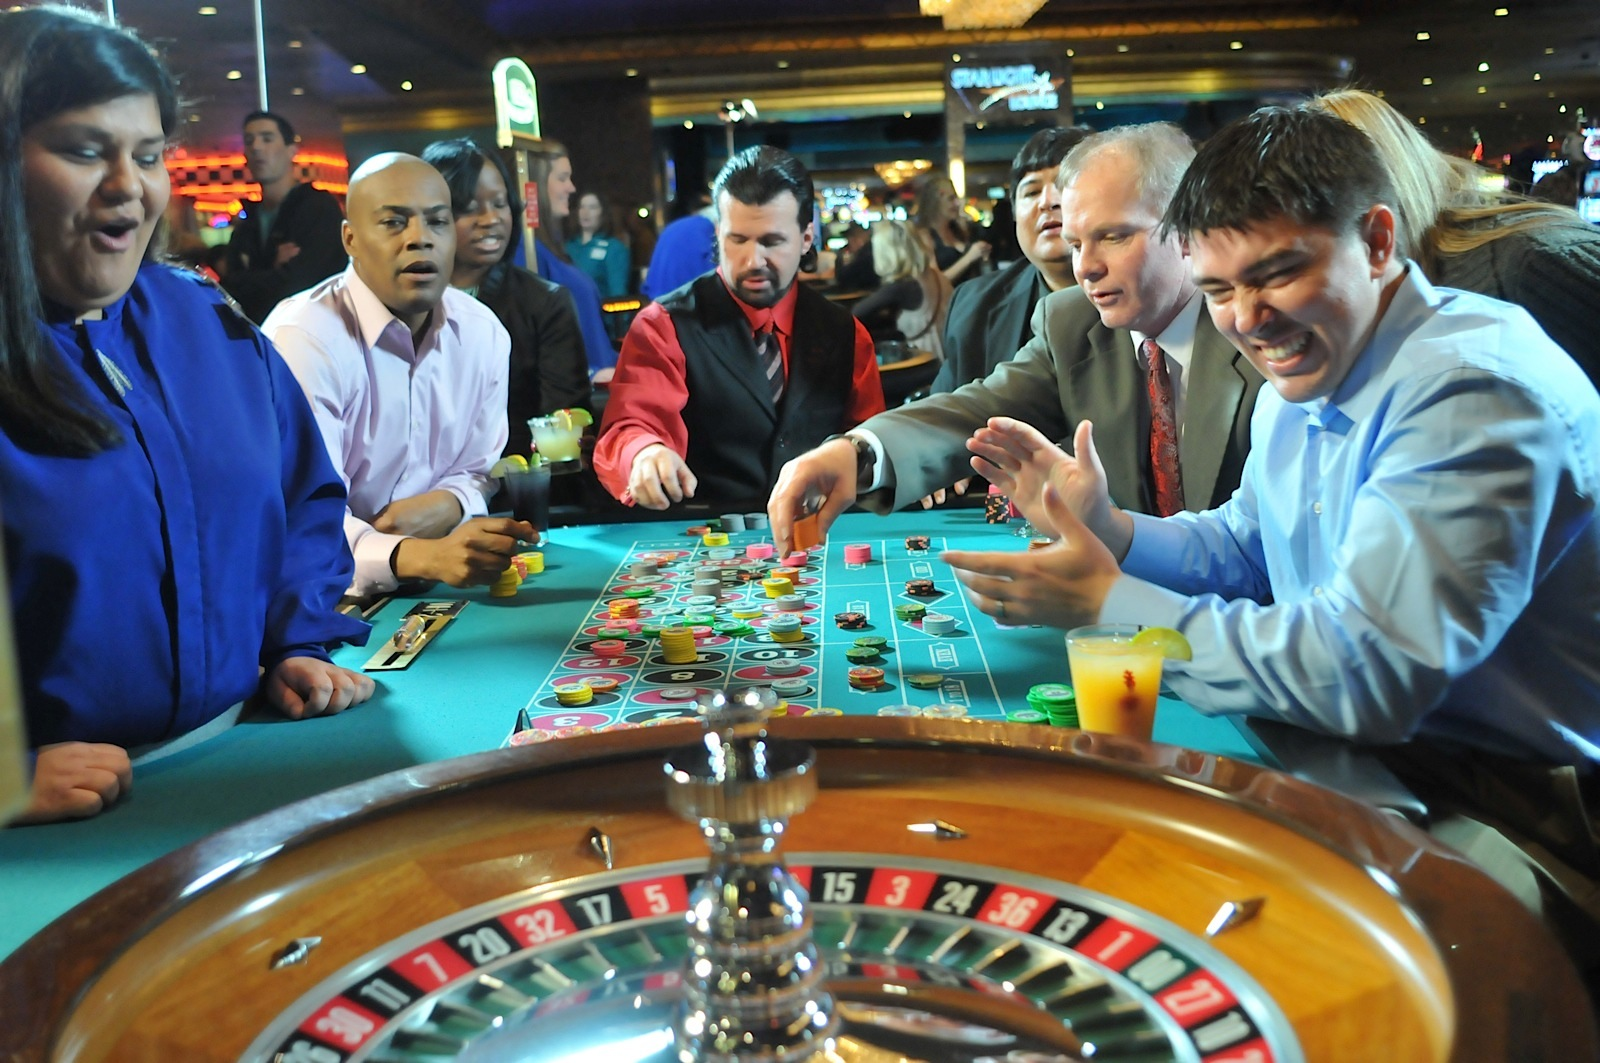 Roulette at Gambling Resorts